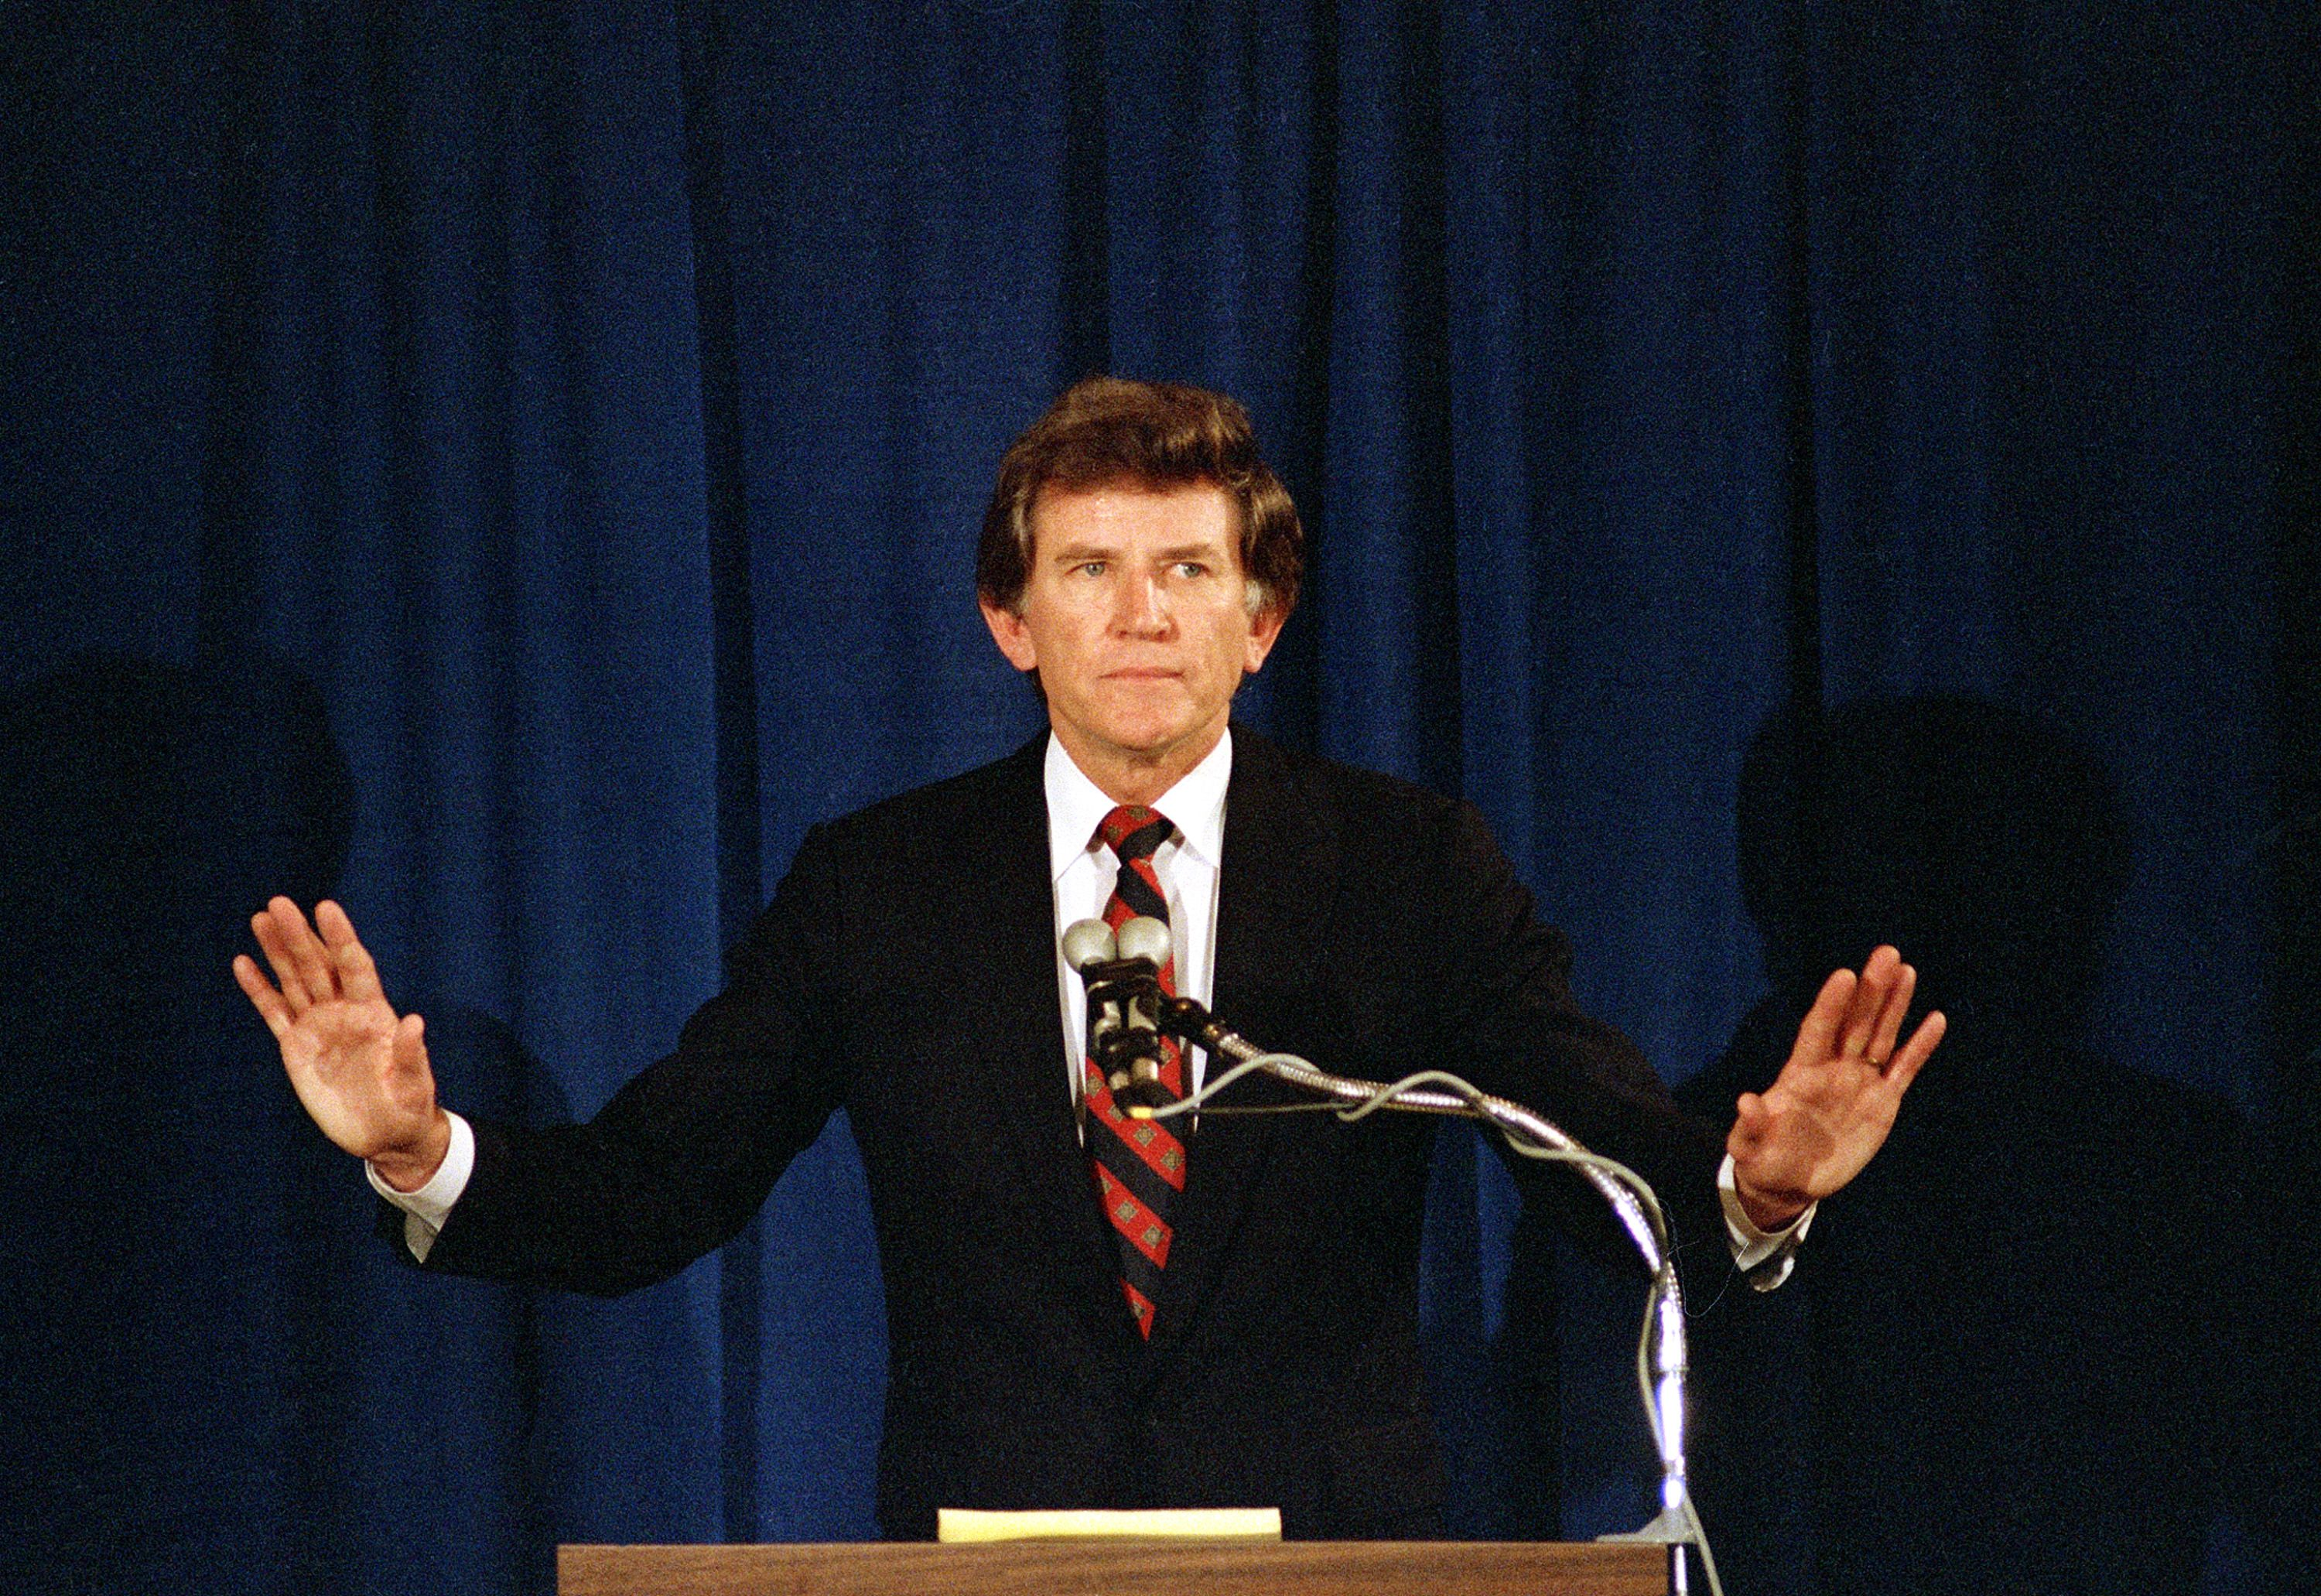 Former U.S. Senator Gary Hart waves his arms to quiet applause from supporters, during a press conference announcing his withdrawal from the Democratic presidential race, Denver, Colo., May 8. 1987GARY HART WITHDRAWS, DENVER, USA